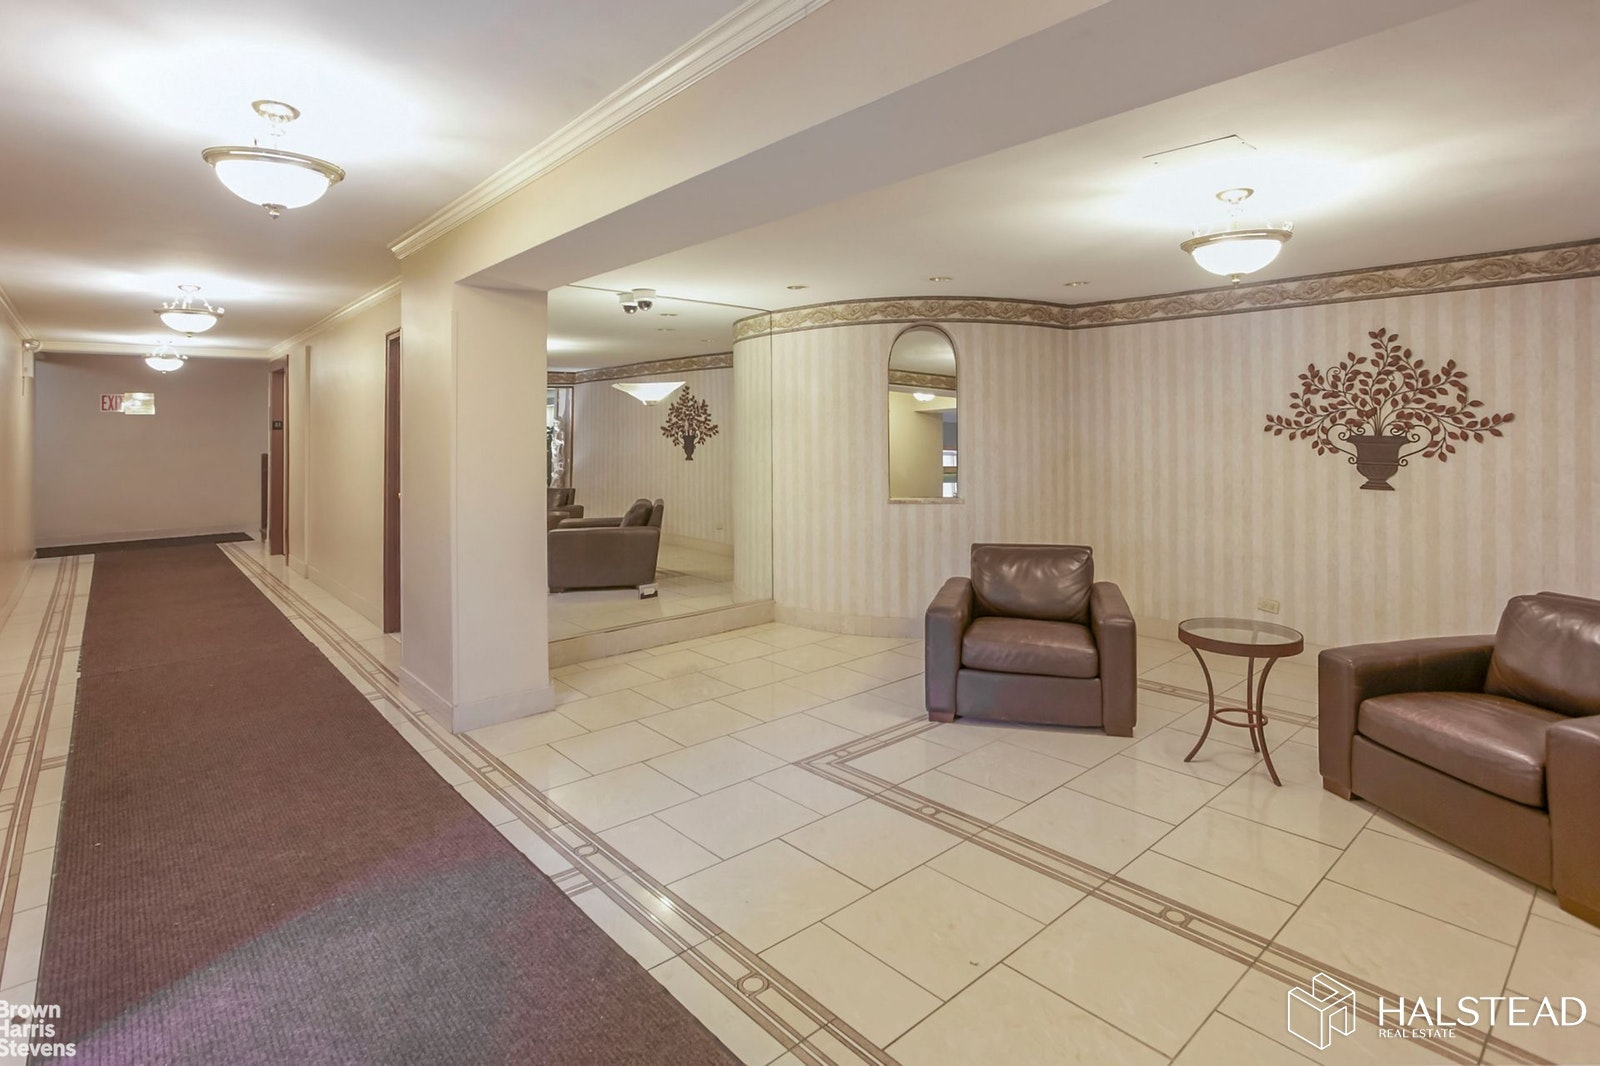 Apartment for sale at 68-61 Yellowstone Blvd, Apt 412